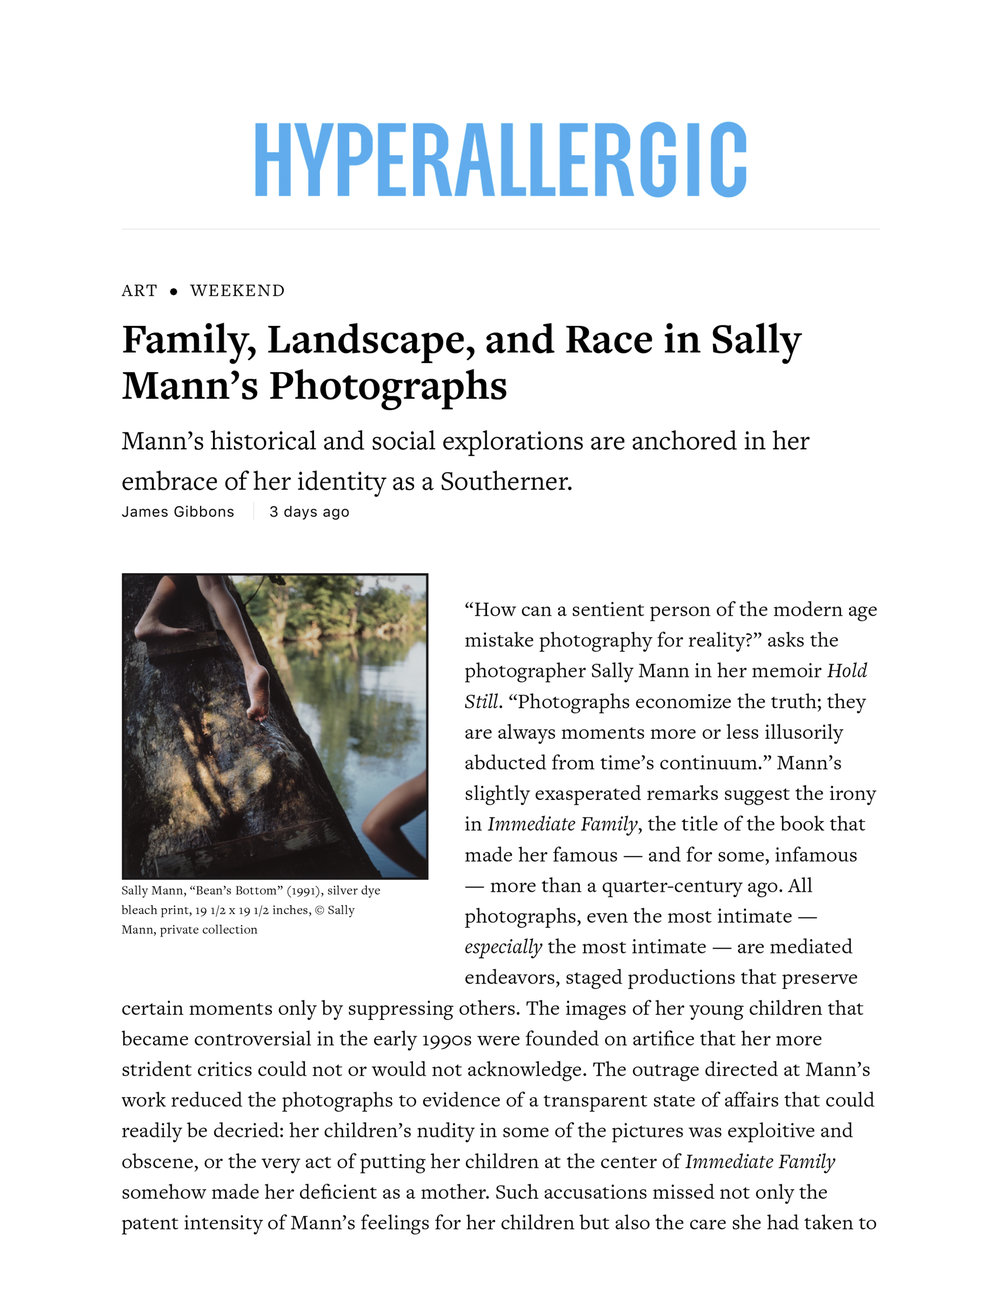 2018_Hyperallergic_James_Gibbons_Family_Landscape_and_Race_in_Sally_Mann's_Photographs-1.jpg